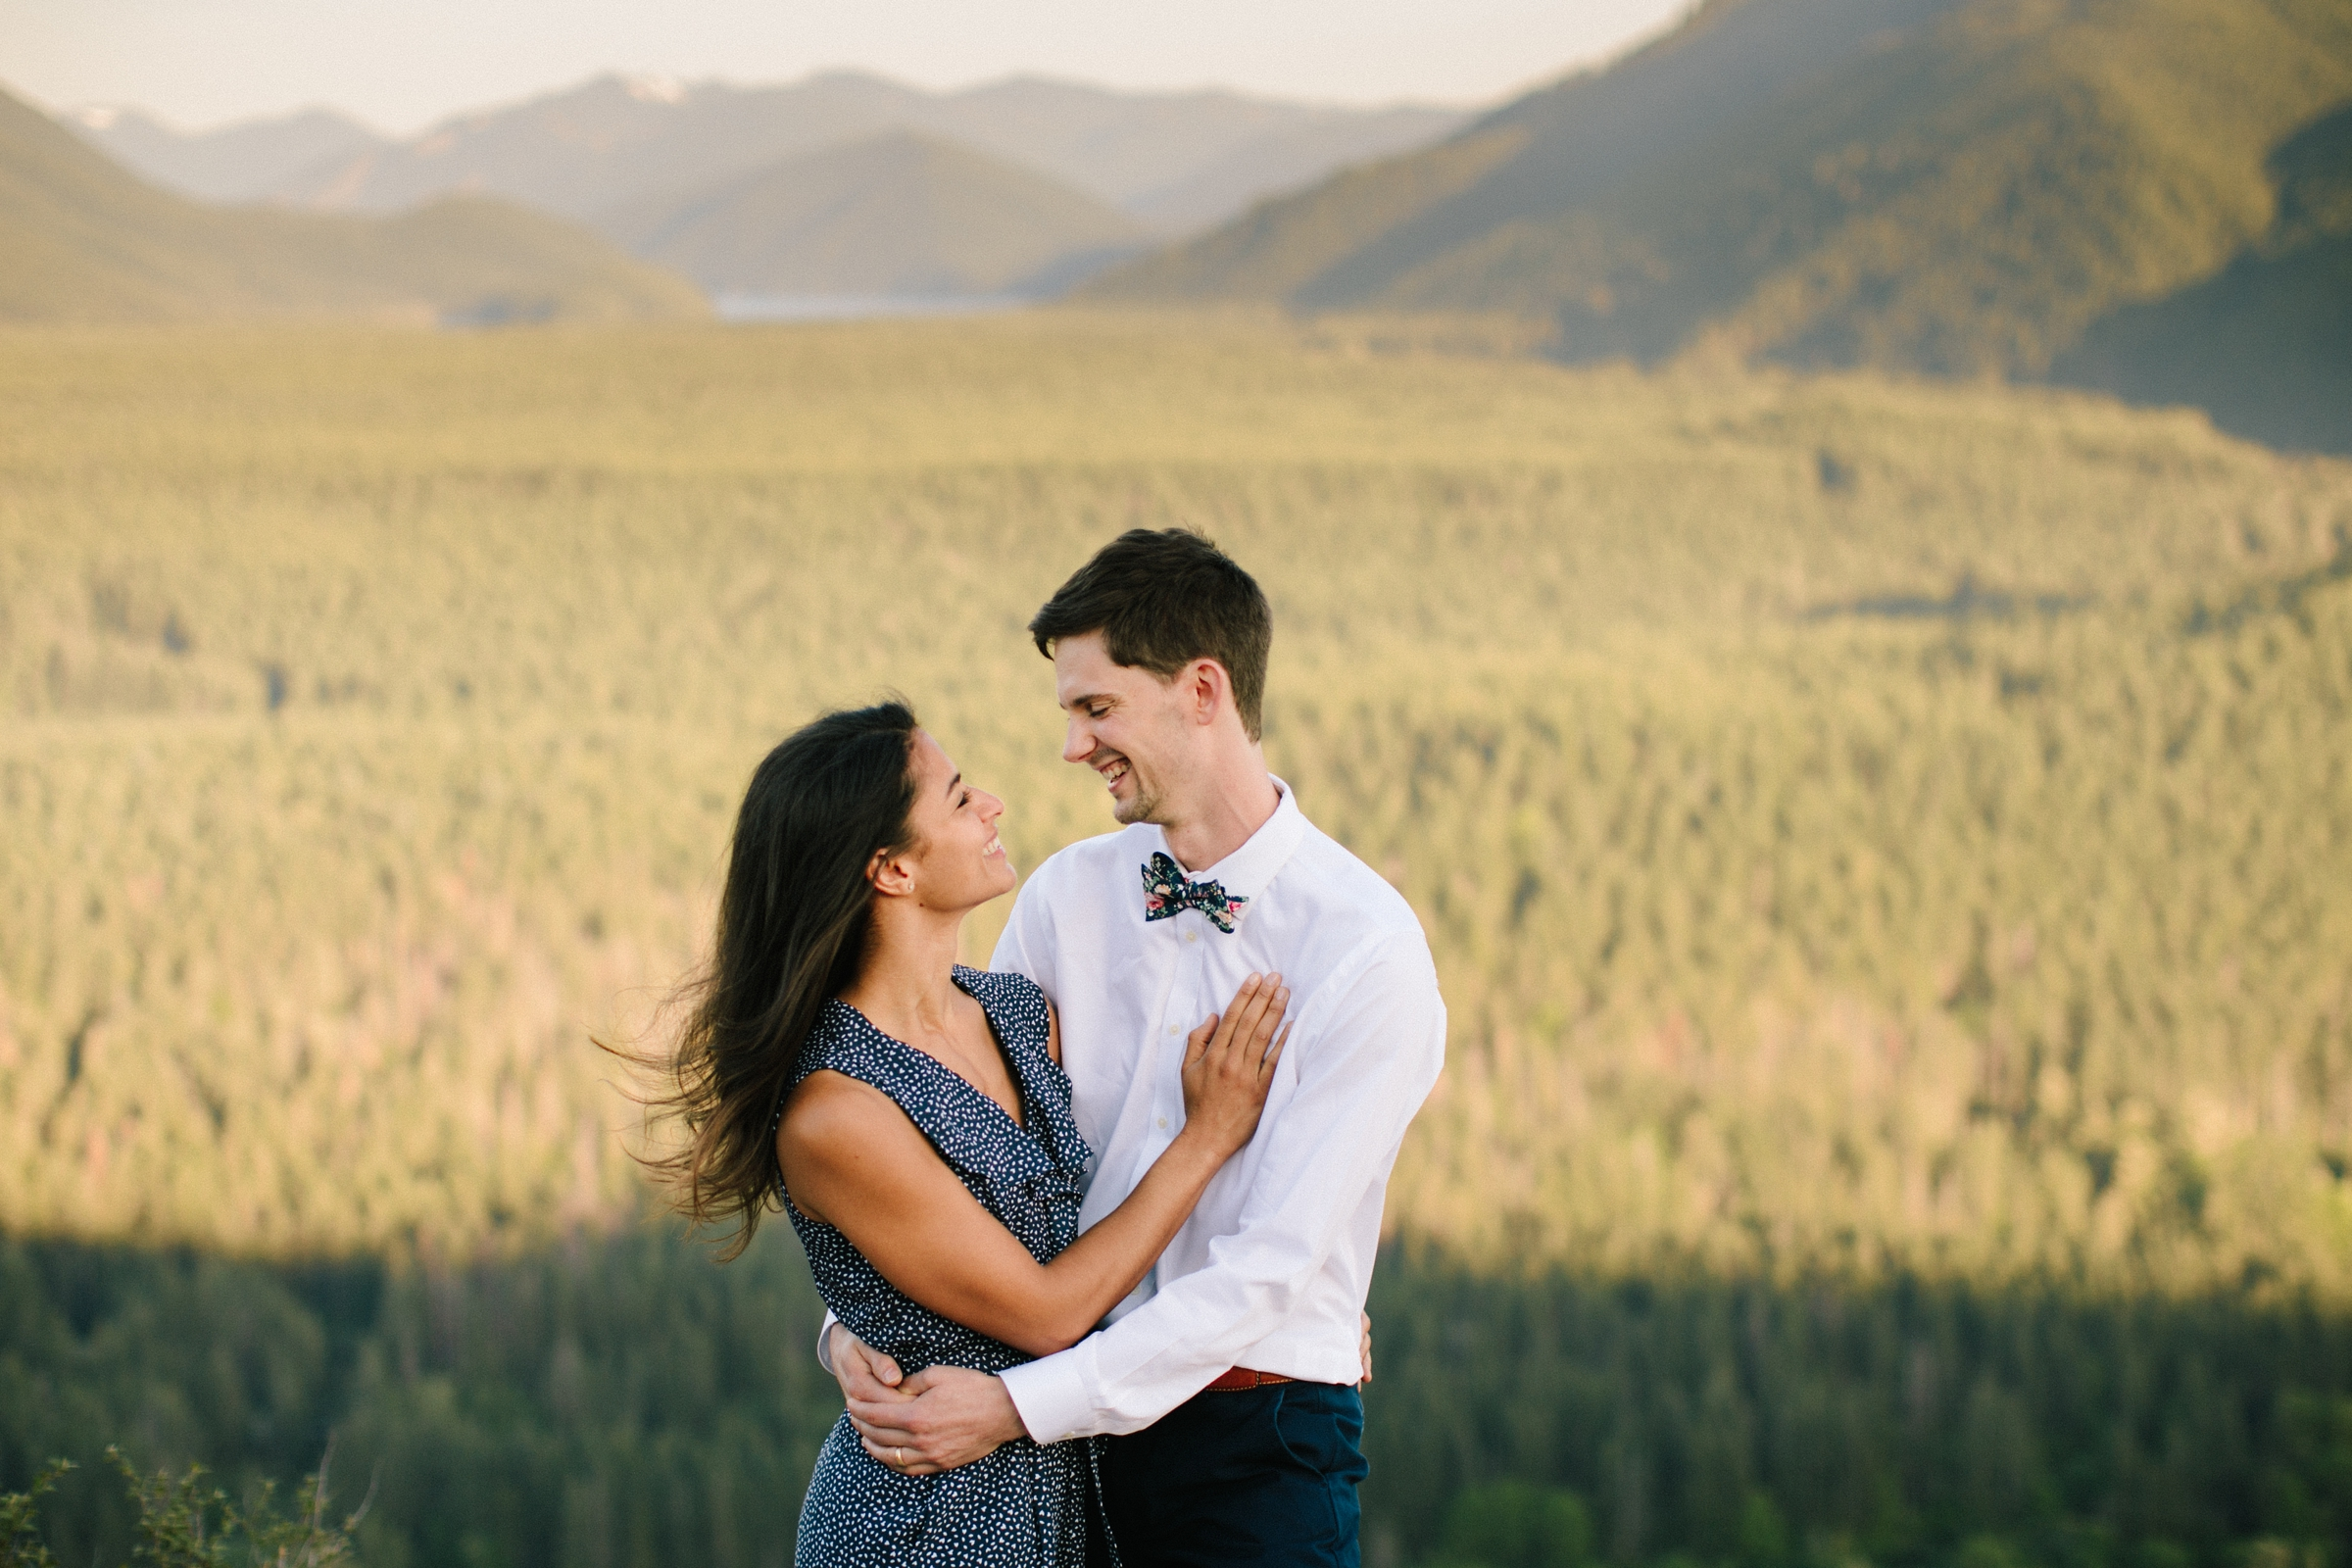 adventure-mountain-top-elopement-photographer-pnw-seattle-washington-wedding-engagement-hike-photography-catie-bergman_0006.jpg